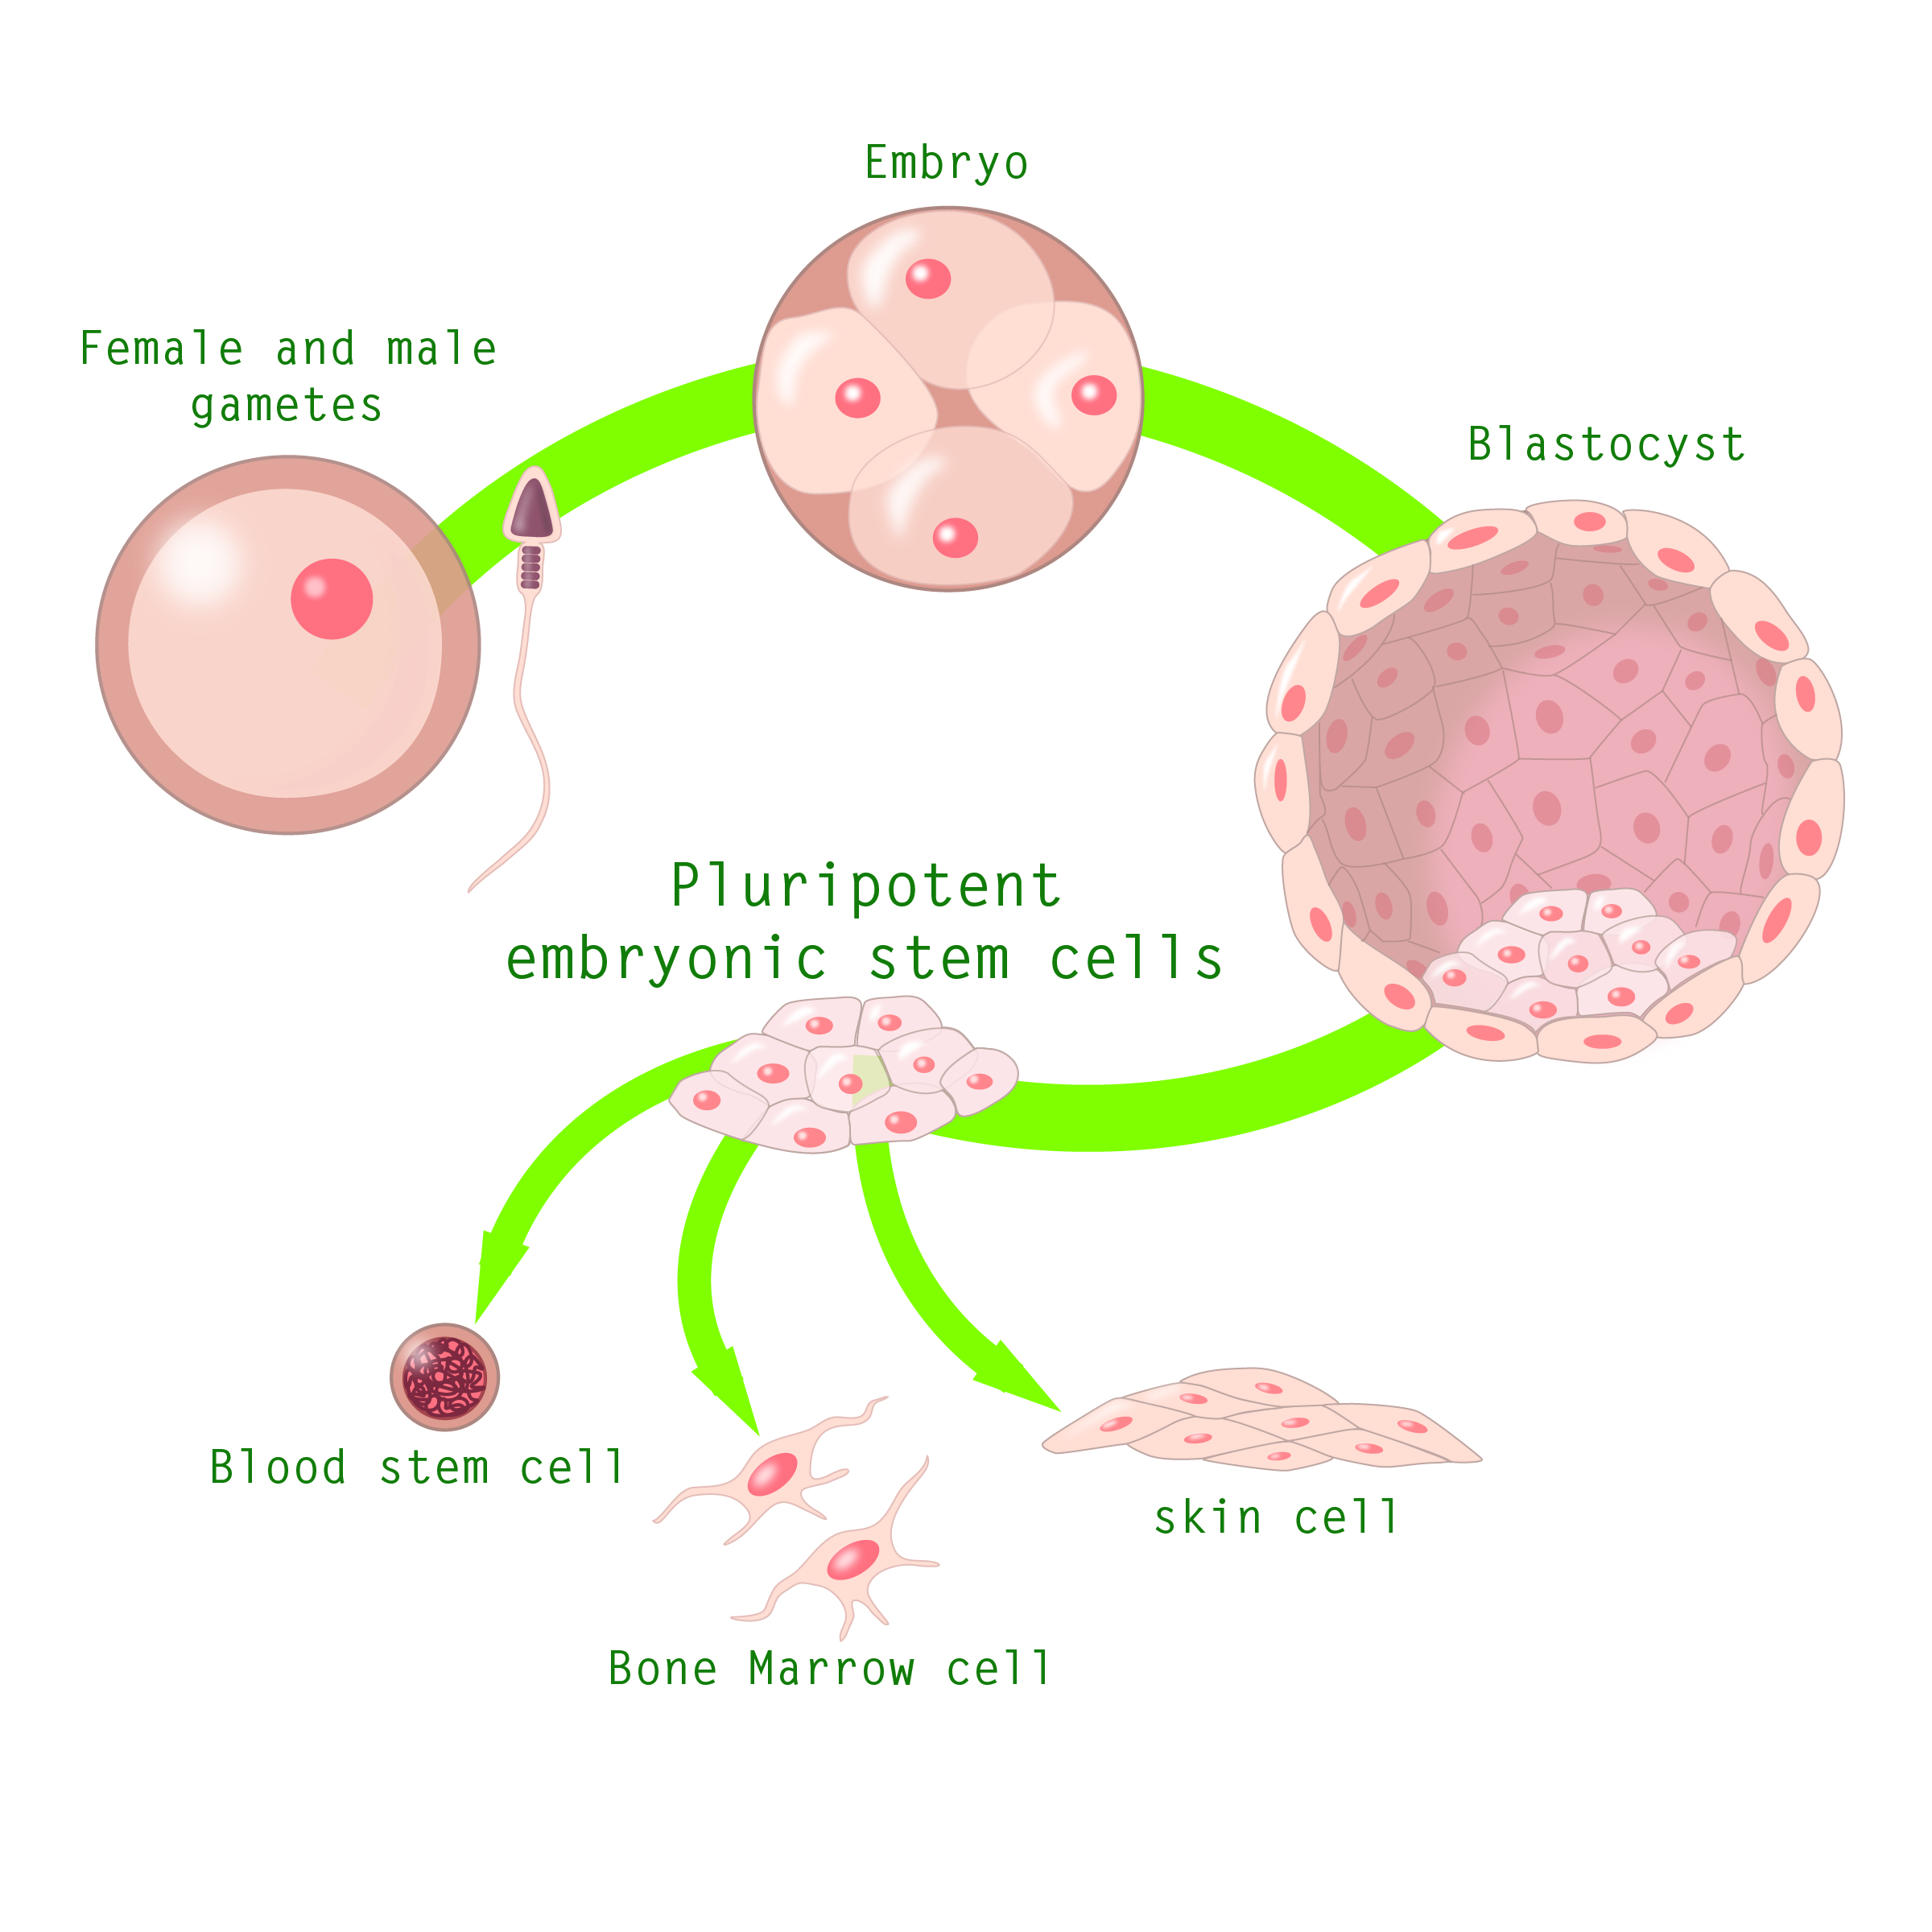 Stem Cell Diagram